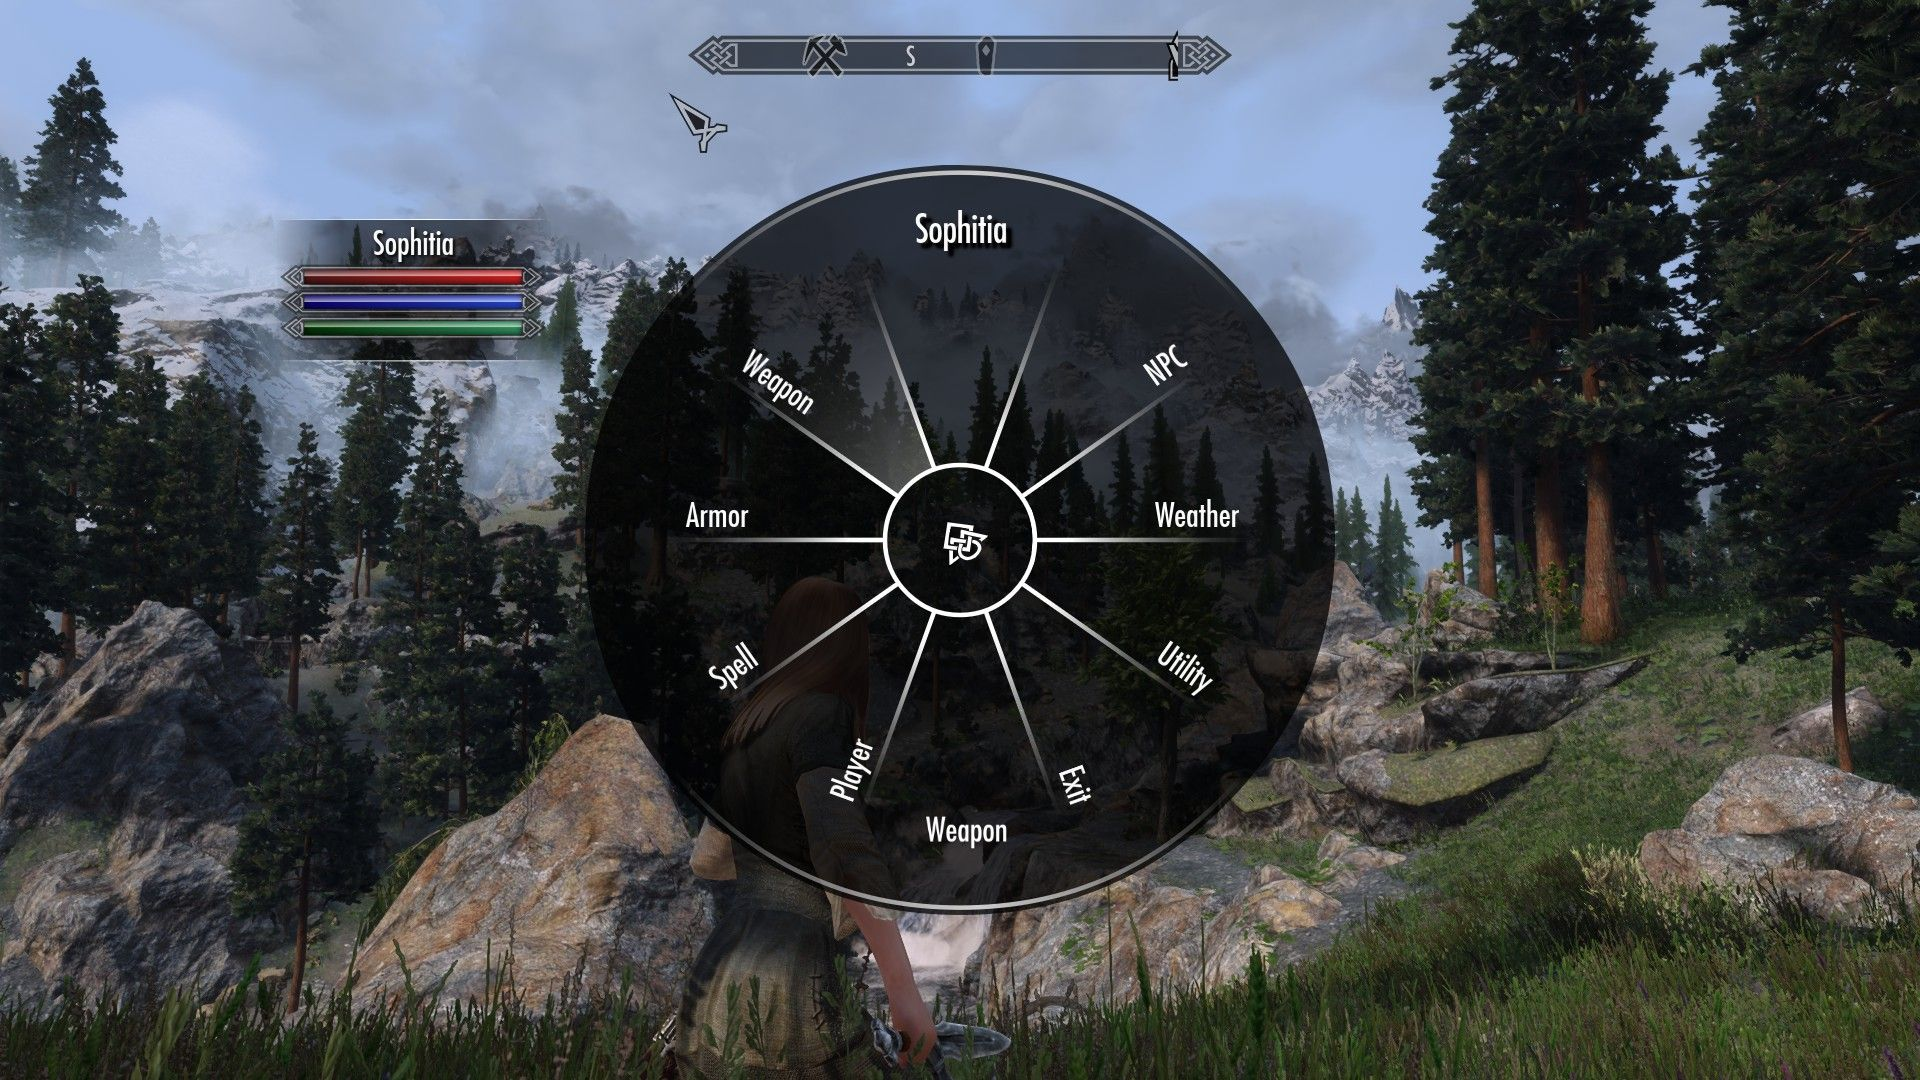 A menu for the Project Proteus Skyrim mod with options to edit NPCs, weather, the player, and so on